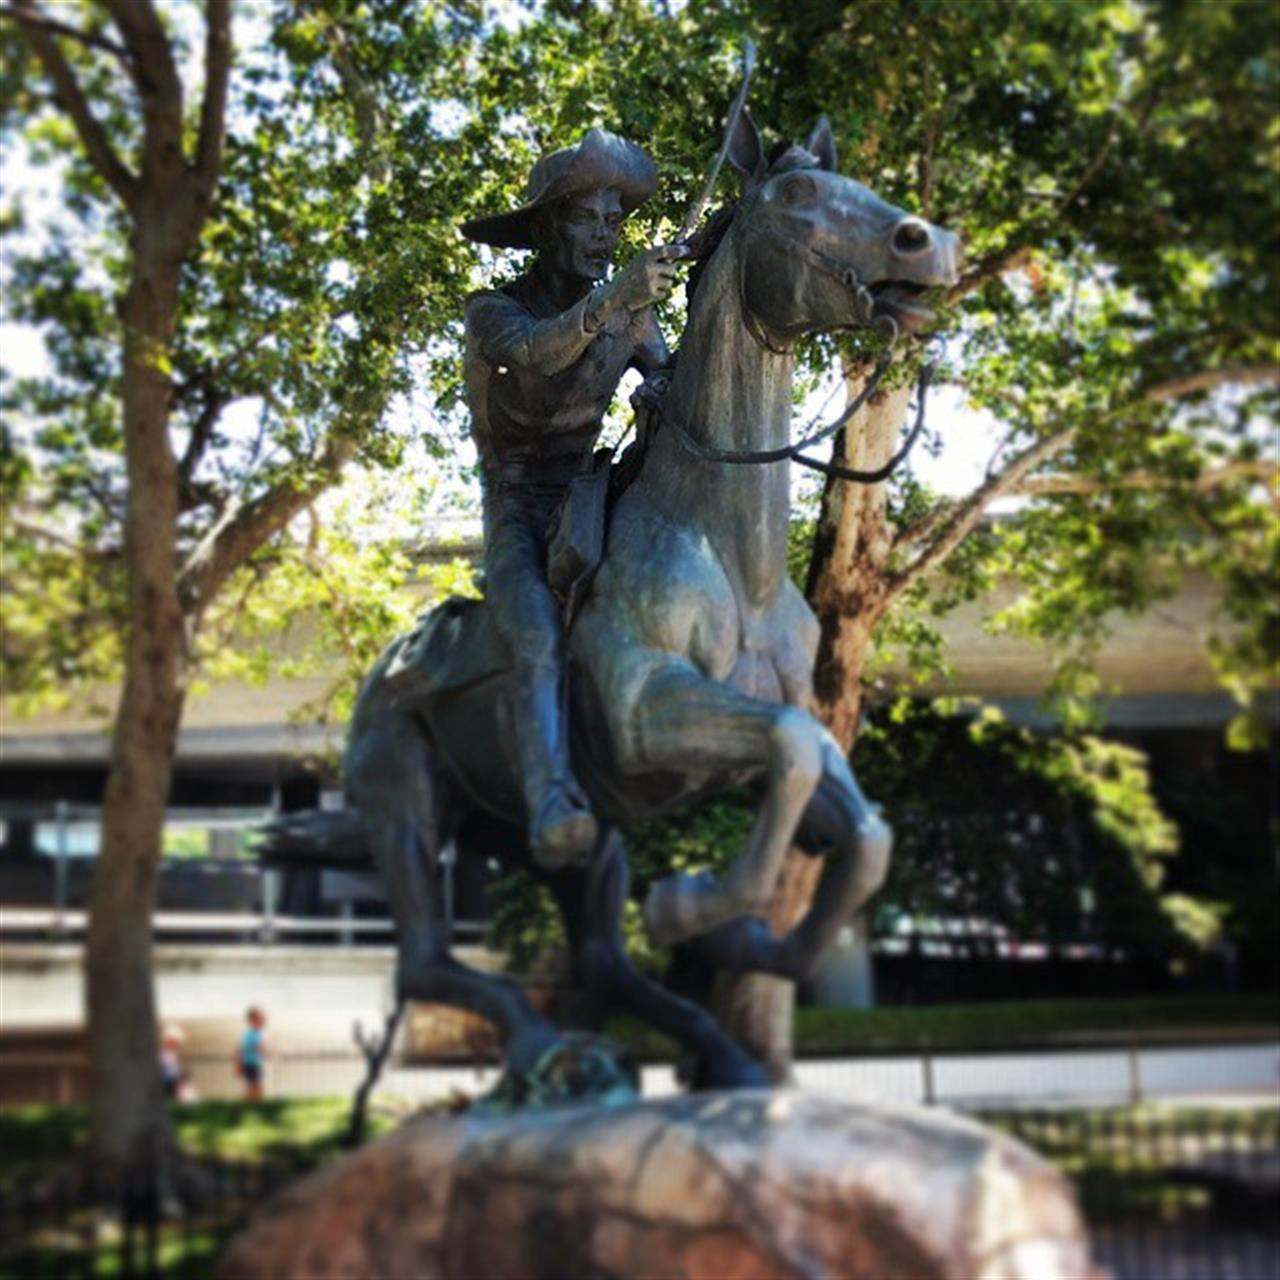 Did you know the #ponyexpressmonument rider's costume is based on a paragraph in Mark Twain's Roughing It, published in 1872. #leadingrelocal #lyonrealestate #oldsacramento